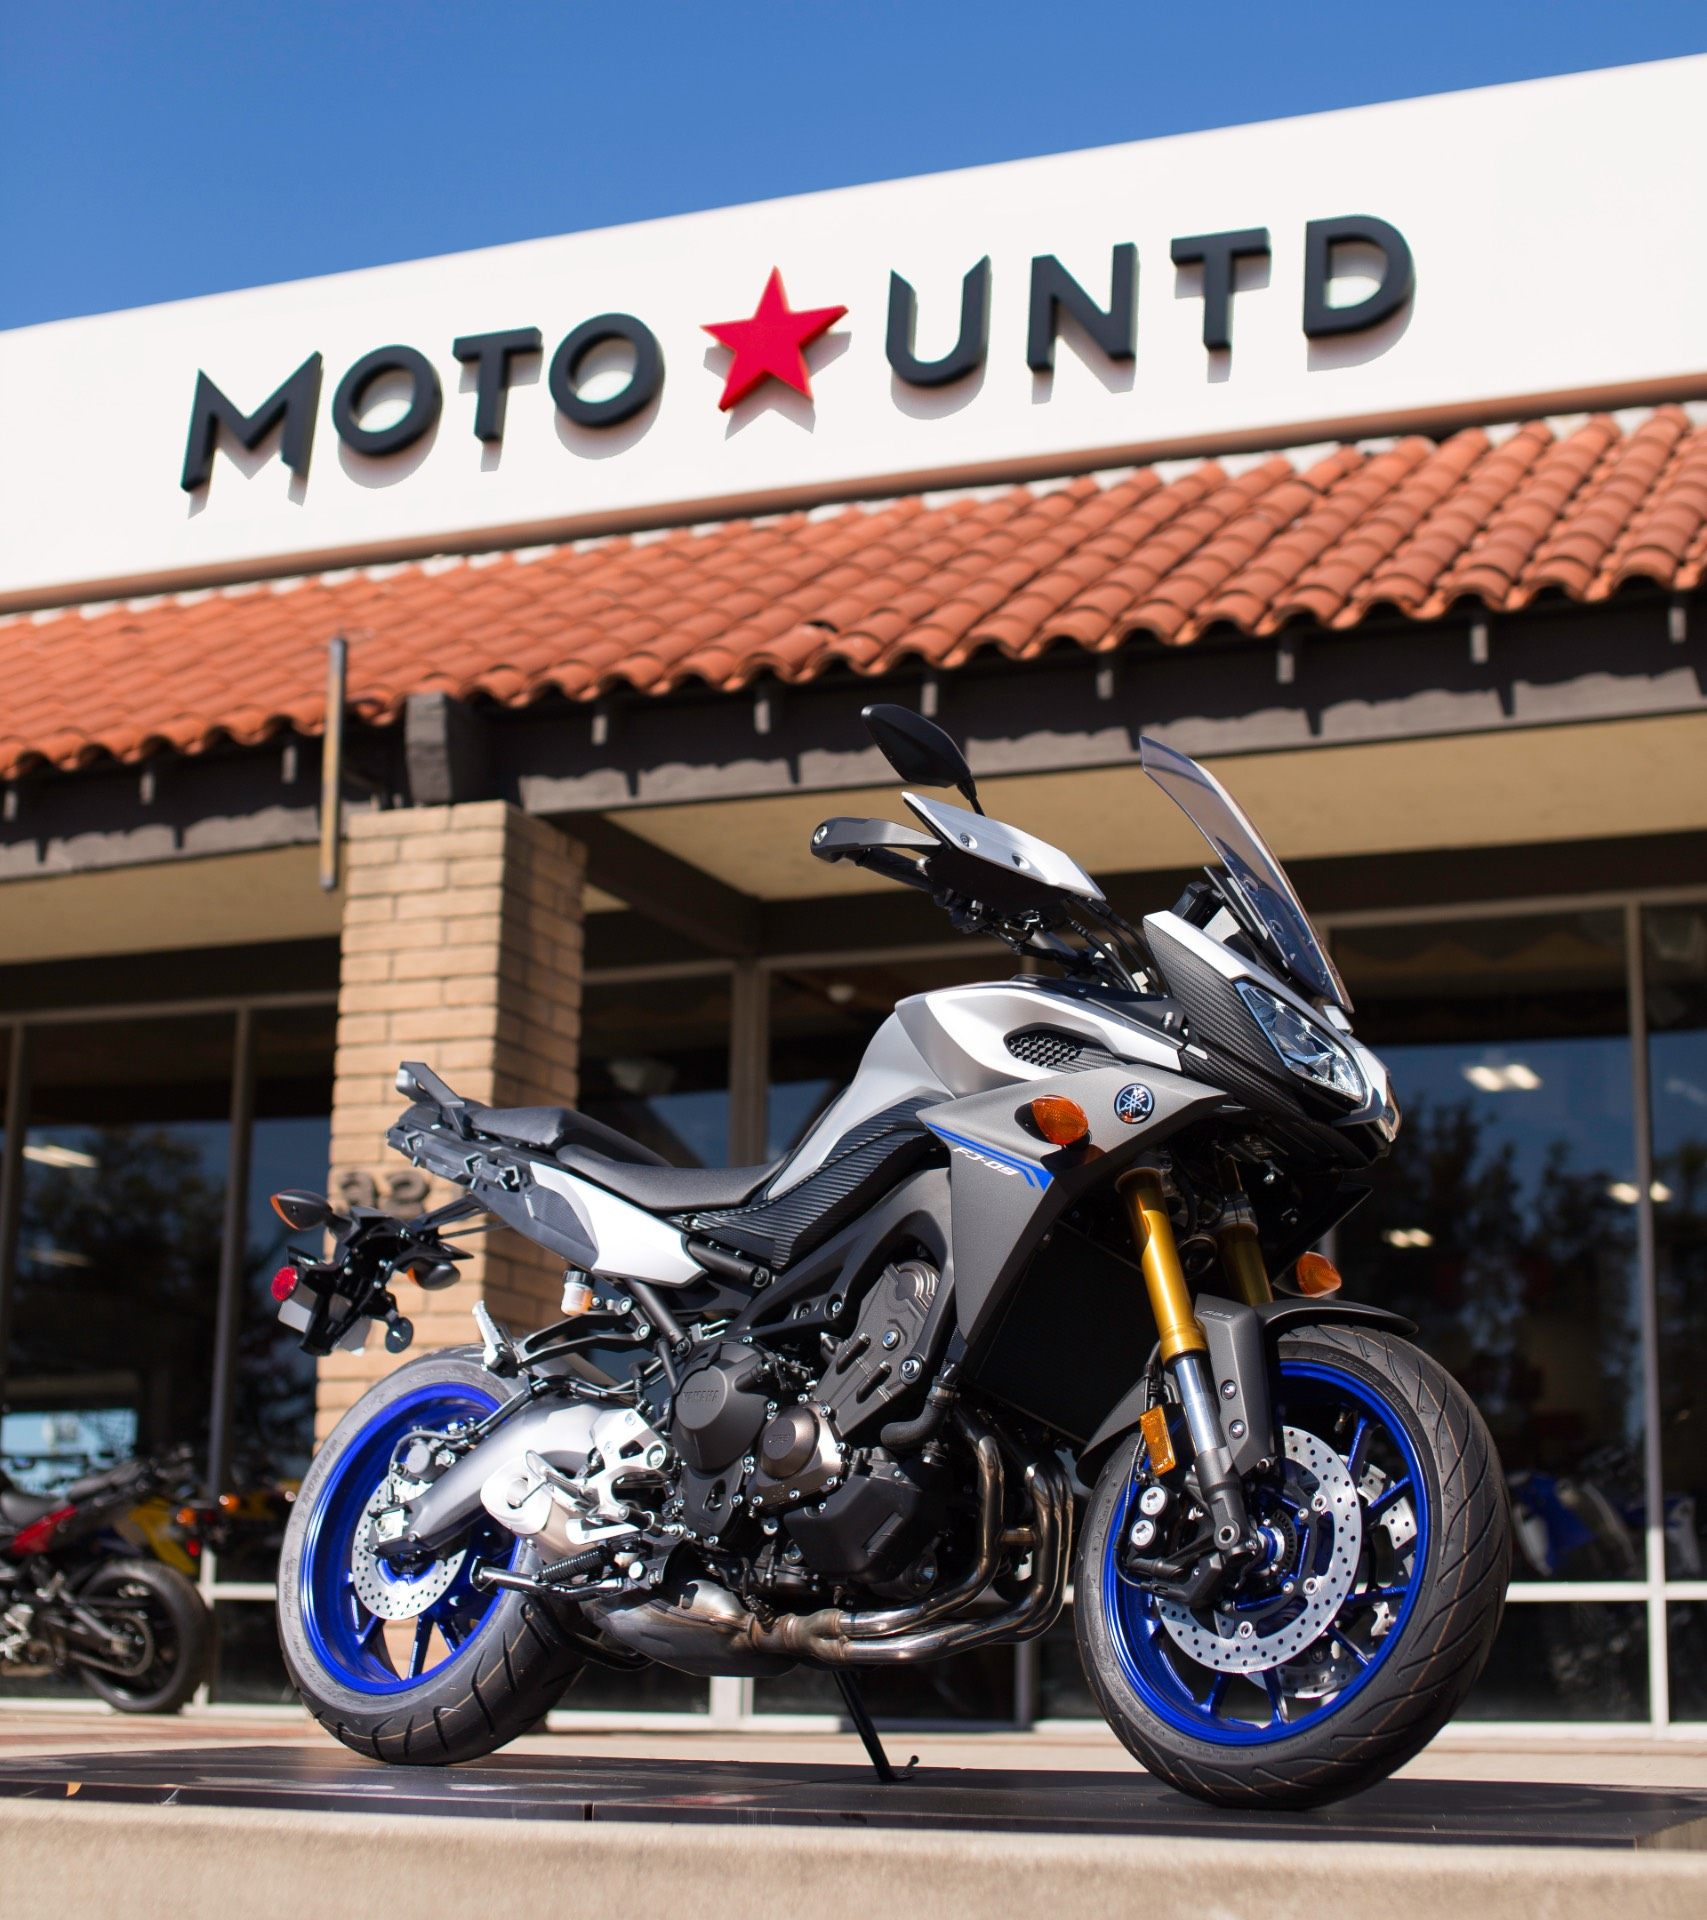 2016 Yamaha FJ-09 for sale 21208